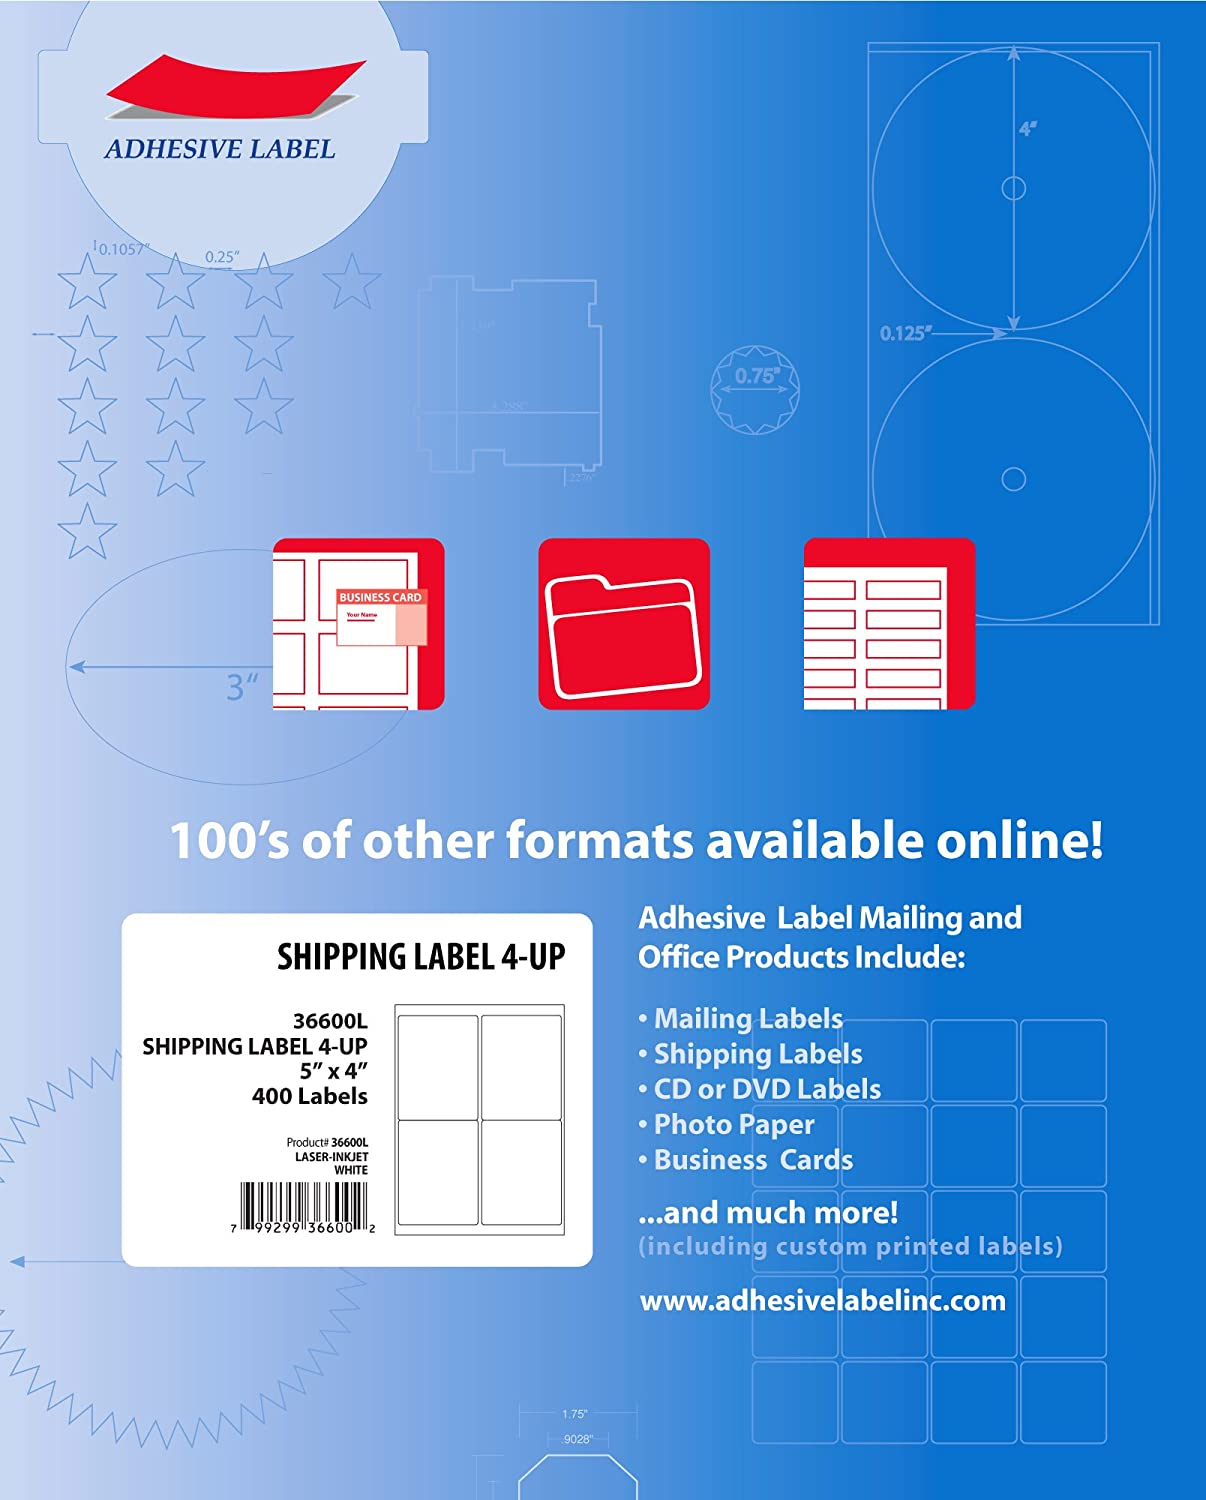 Ace Label Shipping Labels for Laser and Inkjet Printer, 4x5-Inch, Pressure-Sensitive Labels, 100 Sheets, 4 per Sheet, White (36600L)